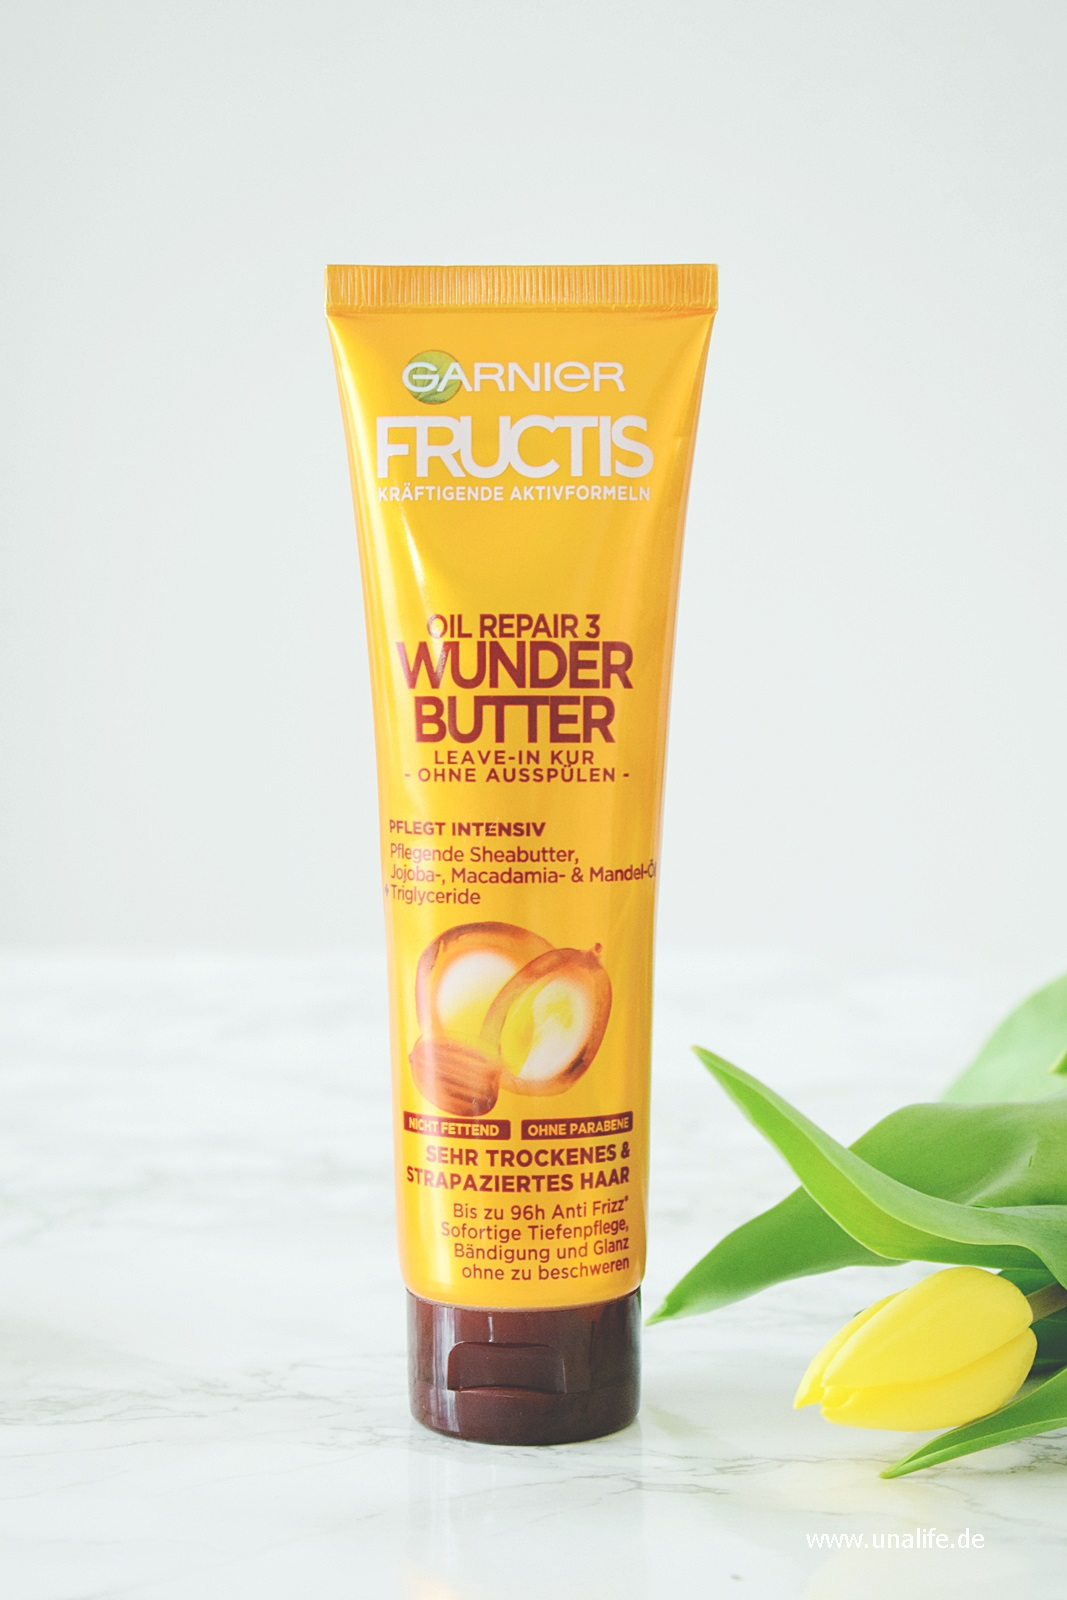 Garnier Fructis Leave in Kur